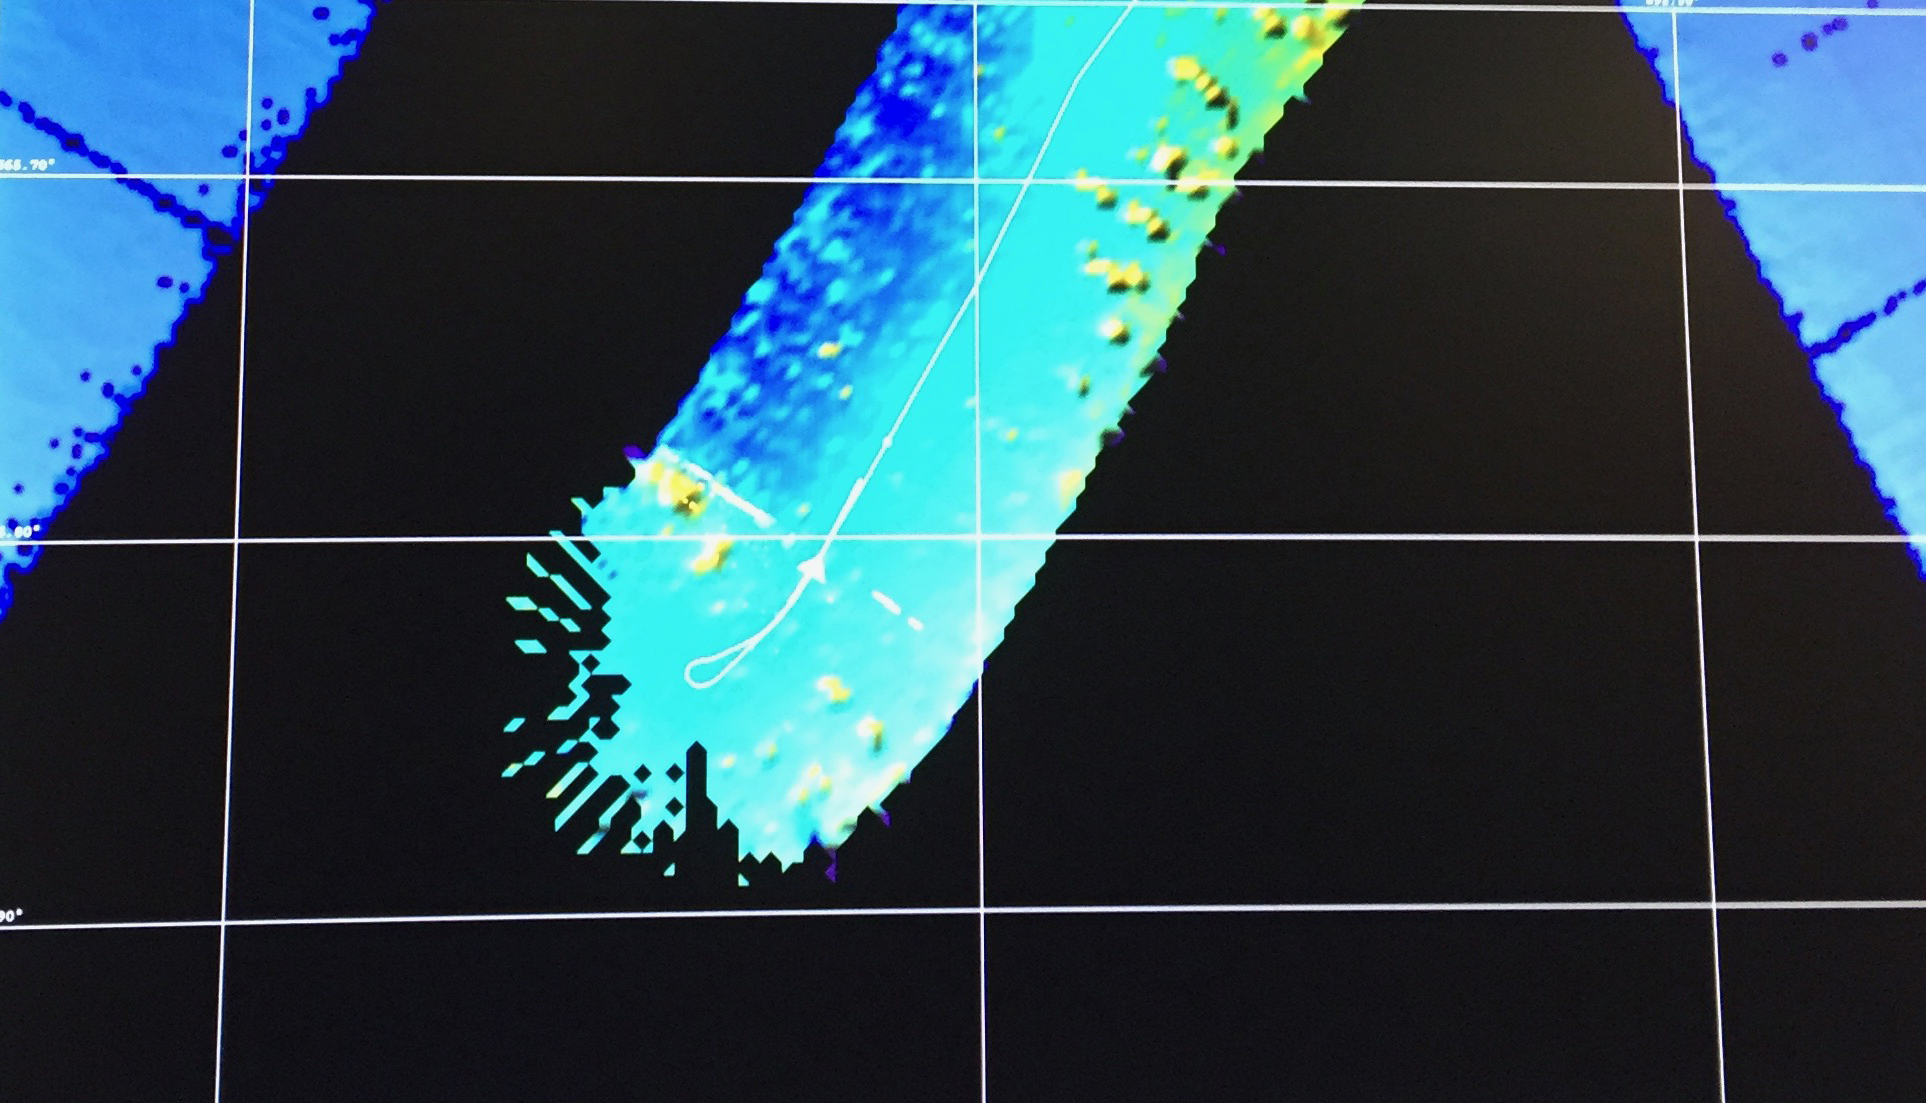 Sonar image of our maneuver around the iceberg!